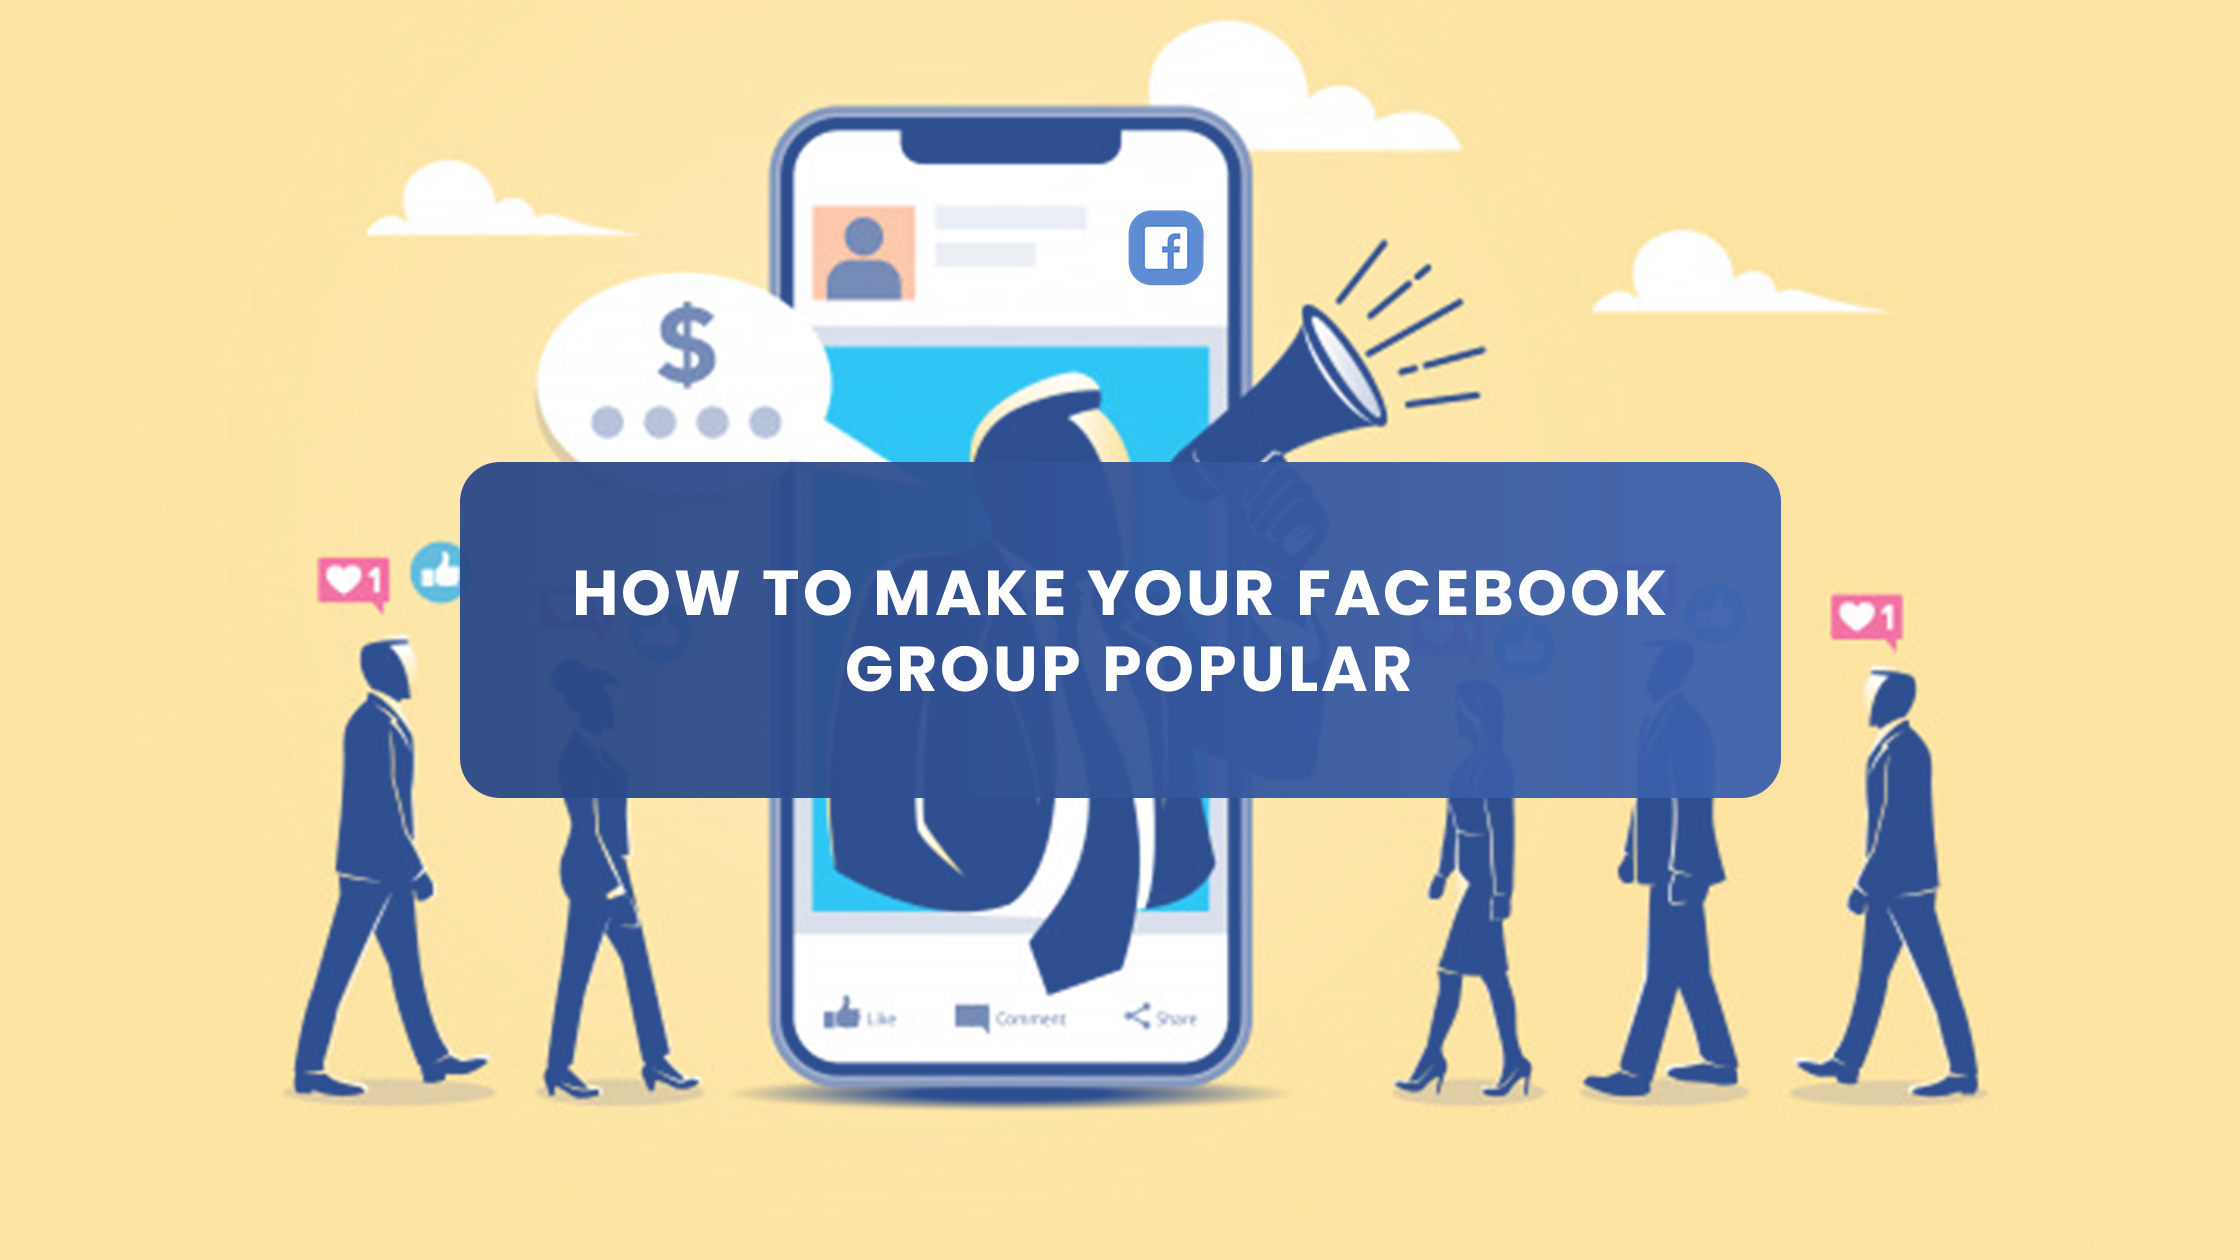 How To Make Your Facebook Group Popular